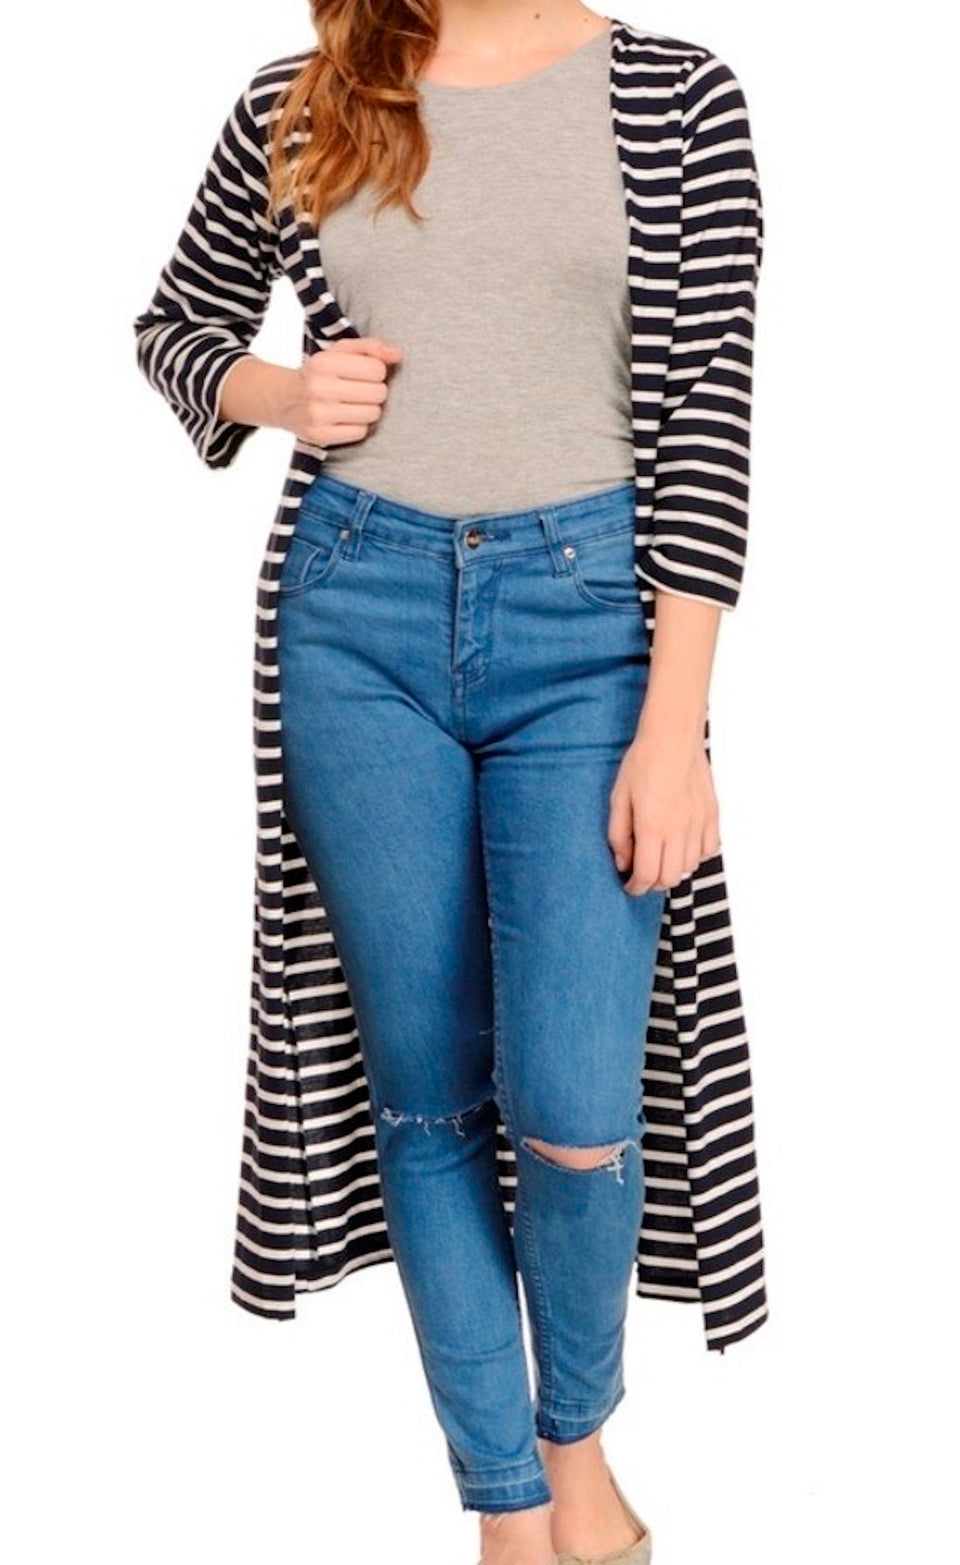 RIGO BRAND STRIPED MAXI SHRUG - BABBALBUY